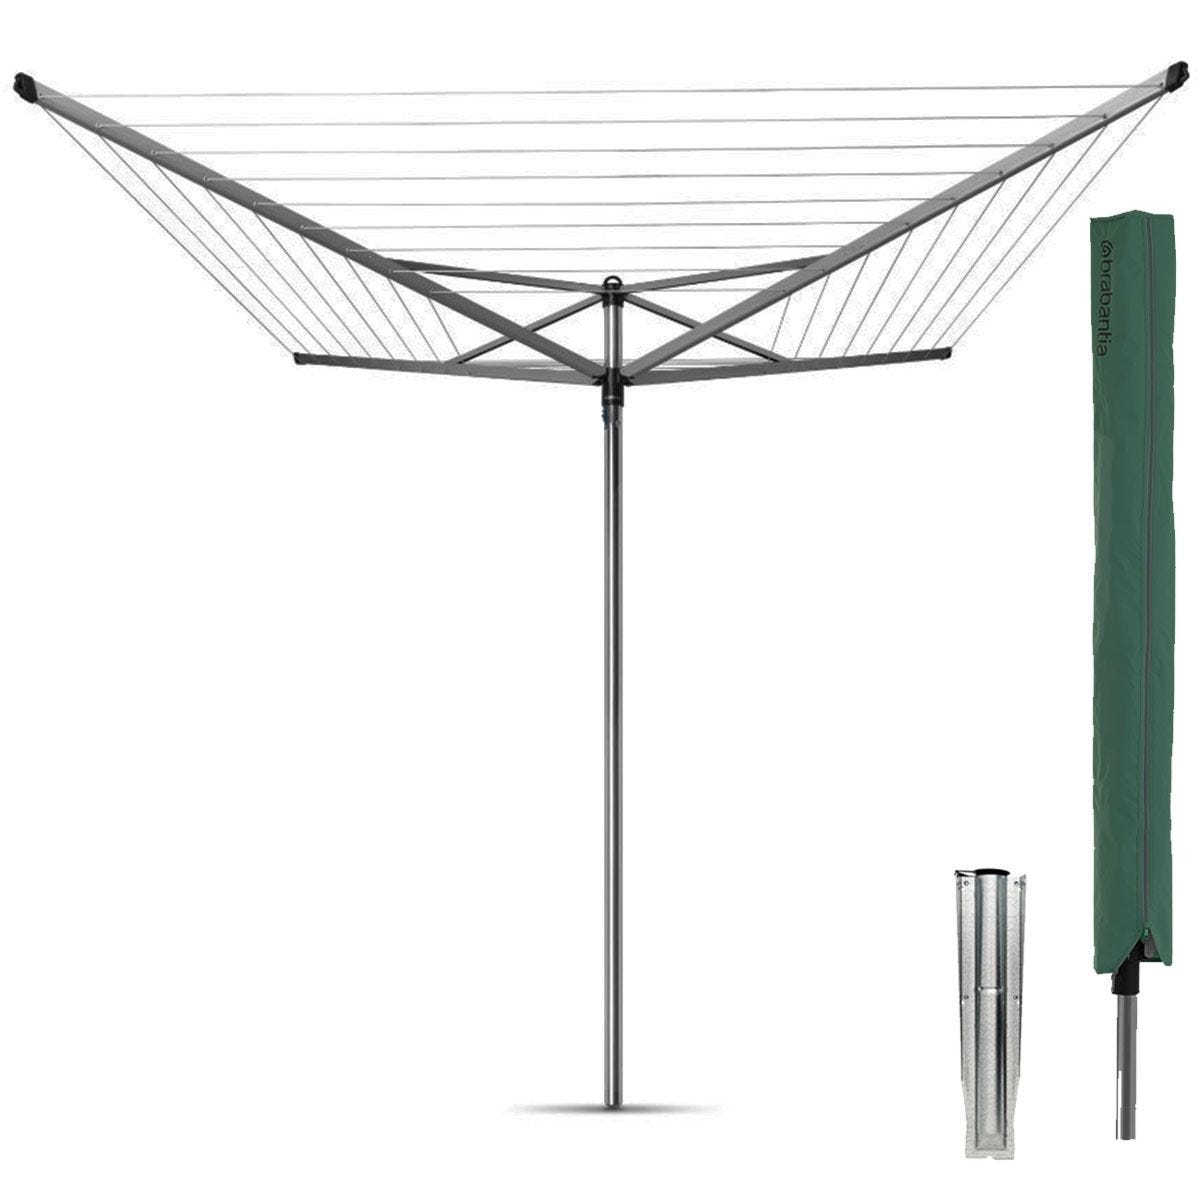 Brabantia Topspinner 50m 4-Arm Rotary Airer with Ground Spike and Cover